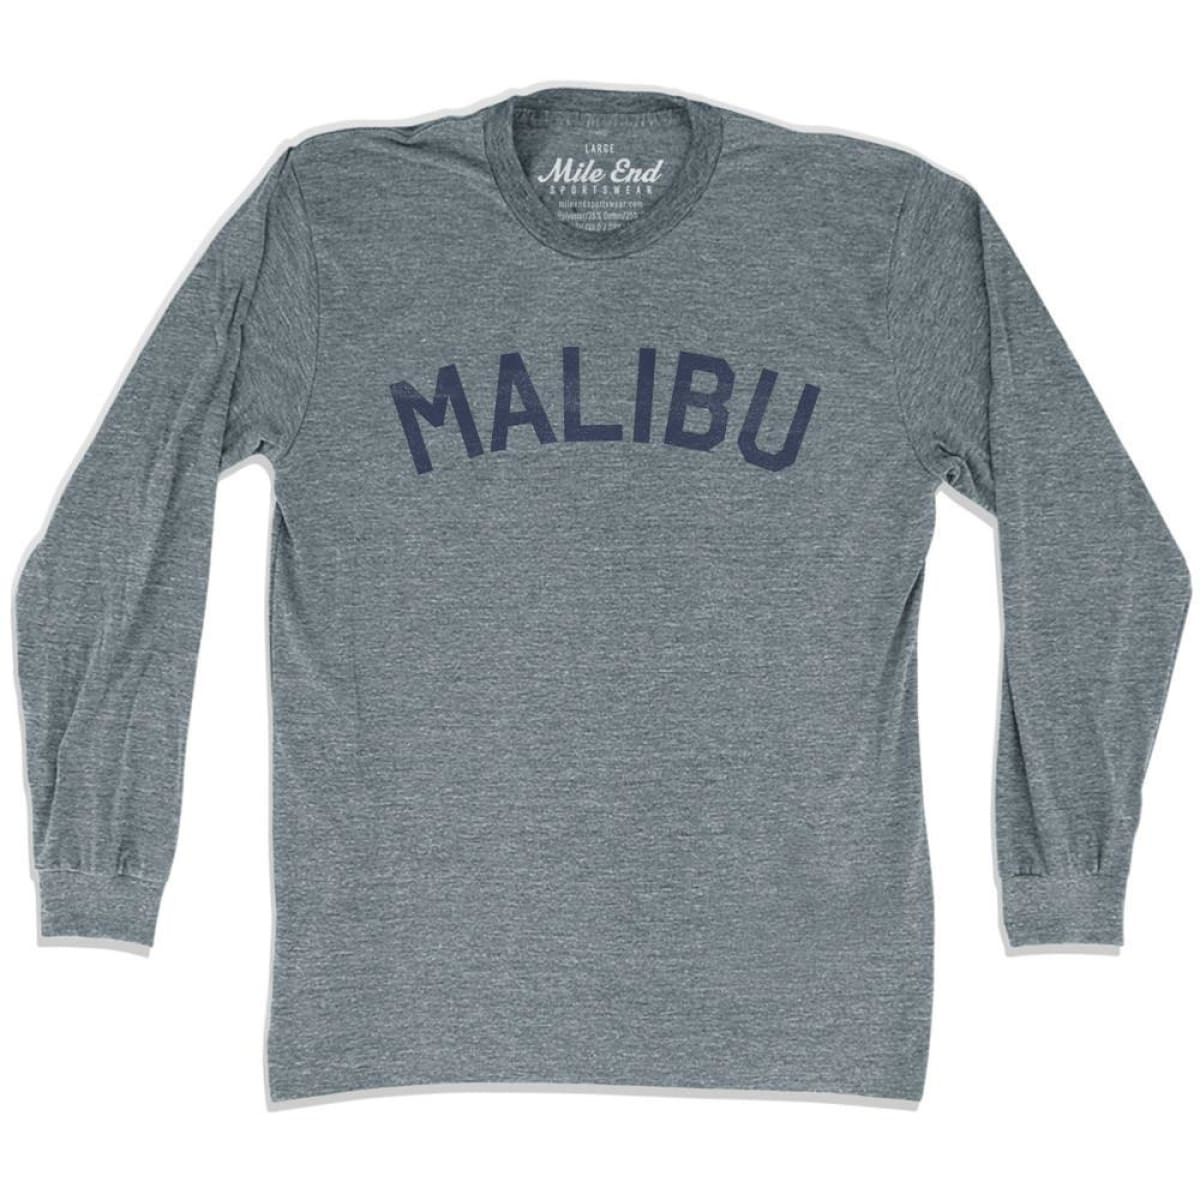 Malibu City Vintage Long Sleeve T-Shirt - Athletic Grey / Adult X-Small - Mile End City